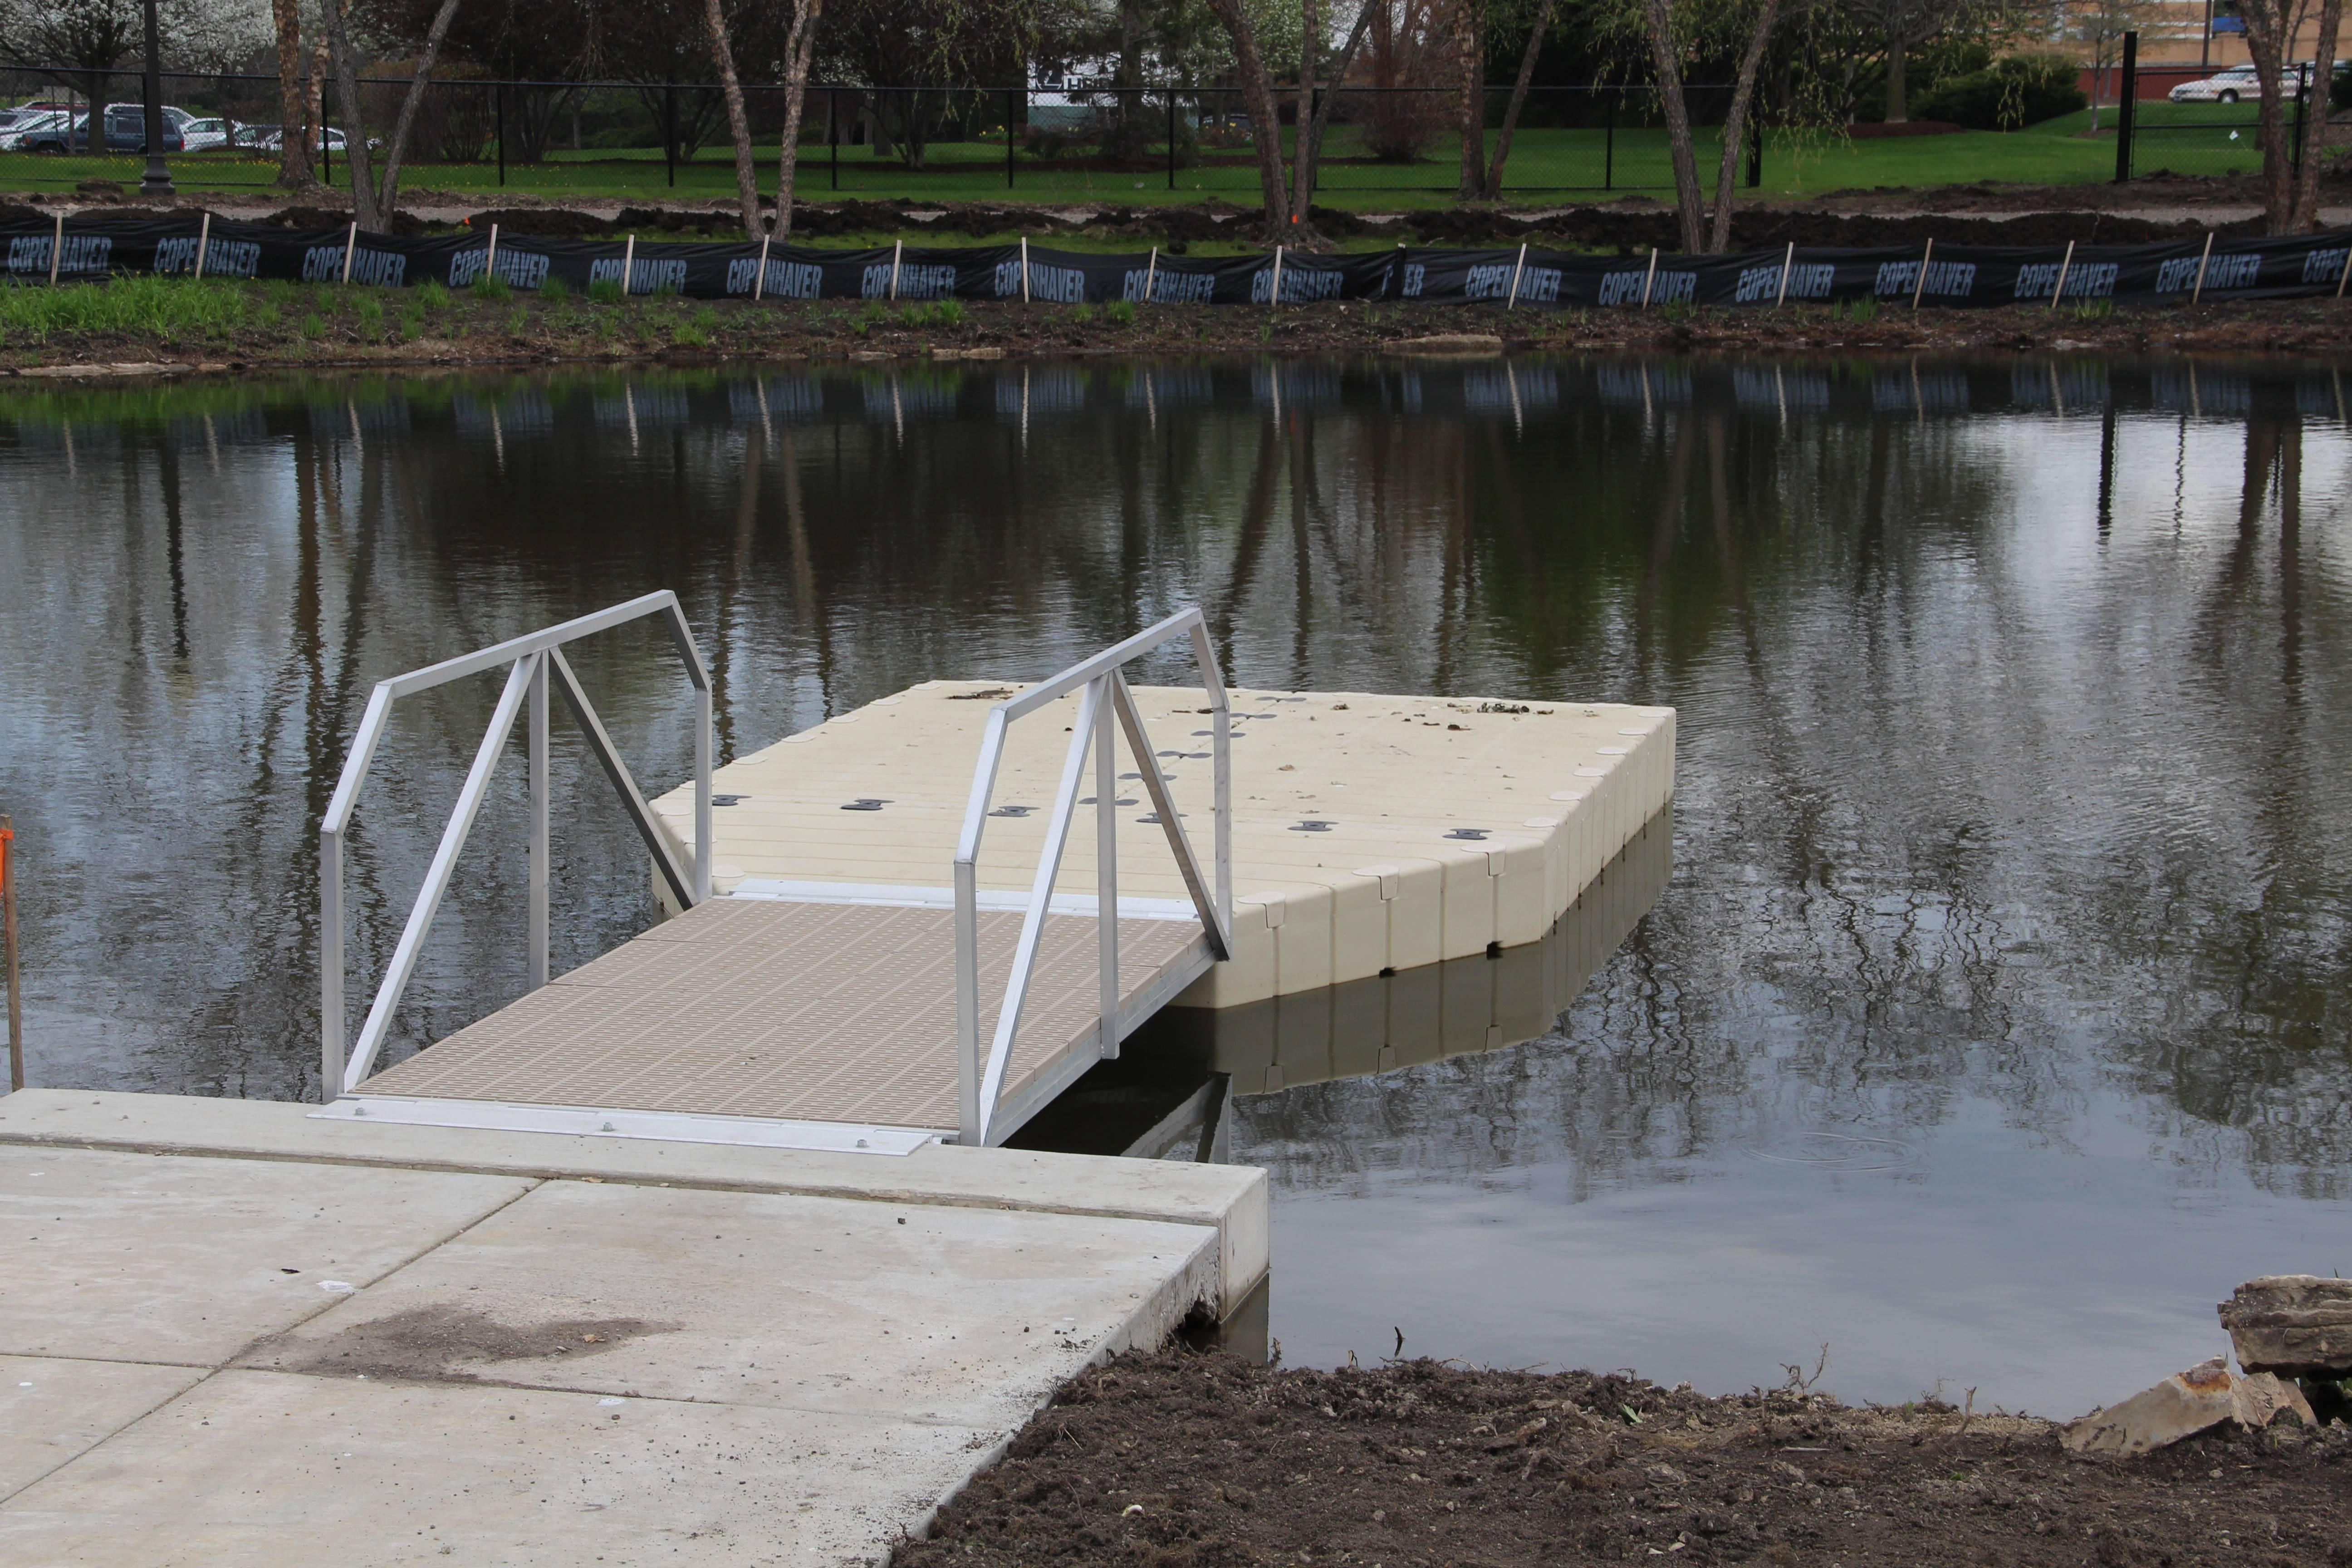 After they tire from running around Schaumburg's new 6.5-acre dog park, canines will be able to cool off with a swim in a pond that's among the facility's highlights. A special ramp leads to the pond, making it easy for dogs to get in and out of the water.